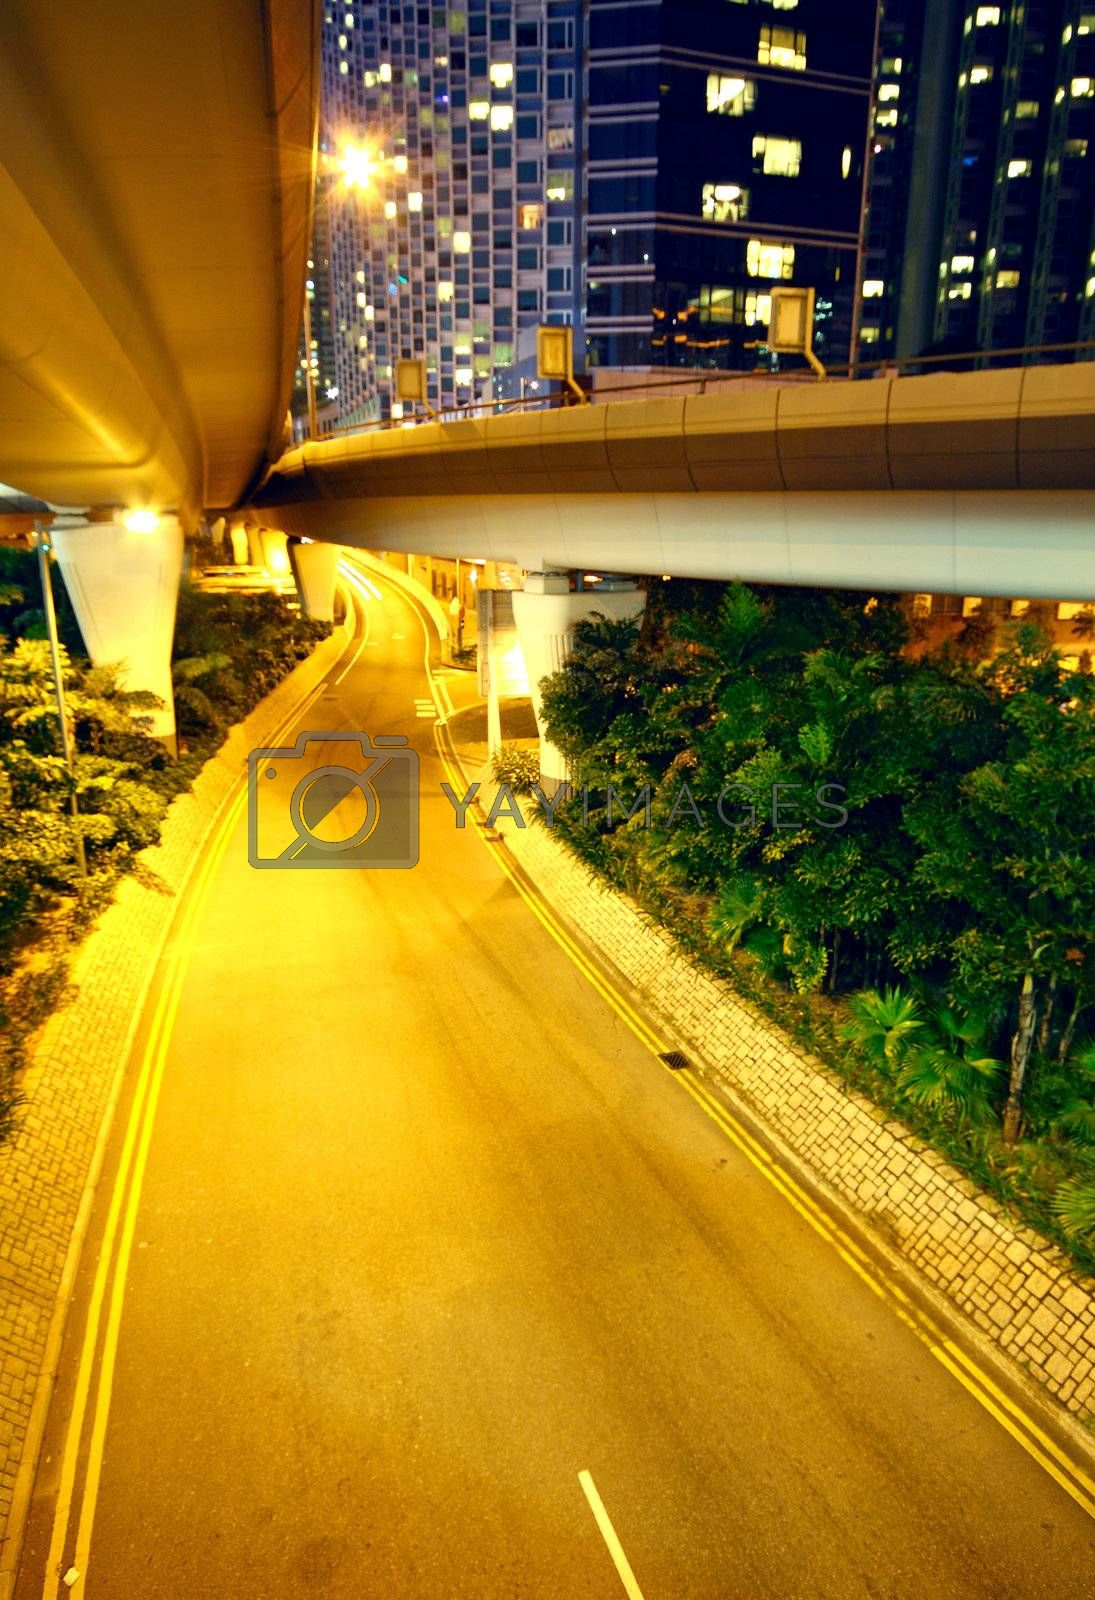 Royalty free image of urban area at night by cozyta